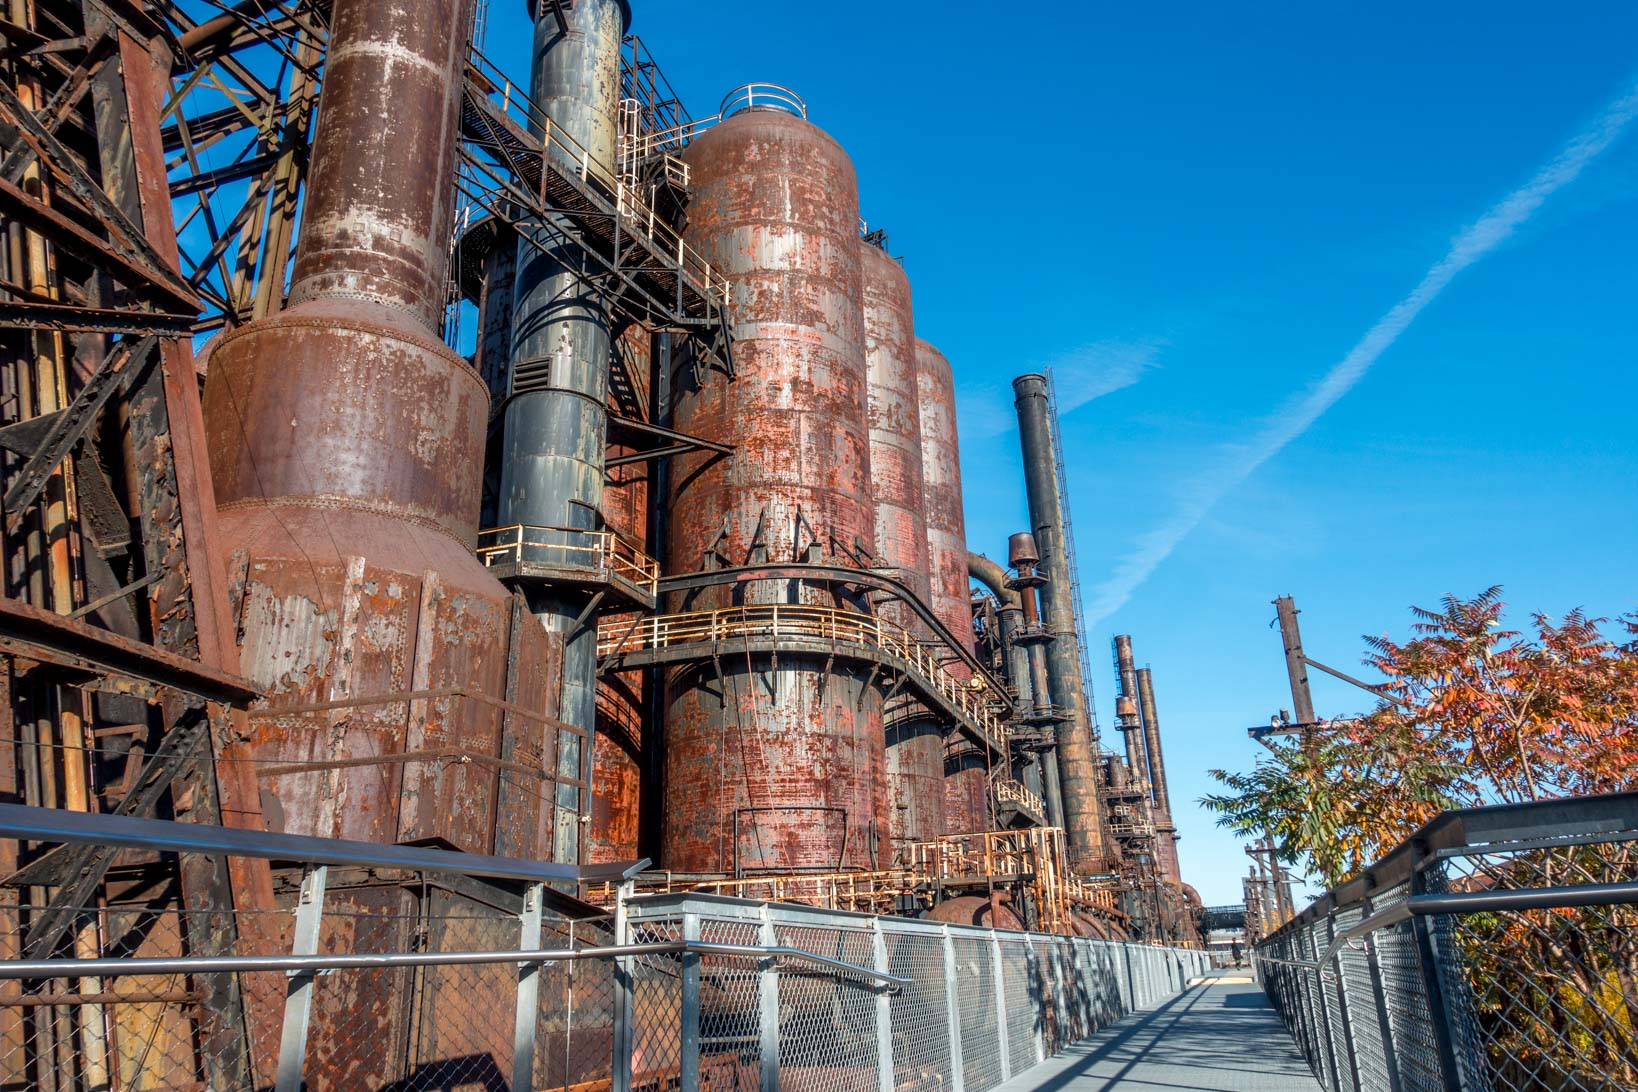 Walkway lined with steel stacks